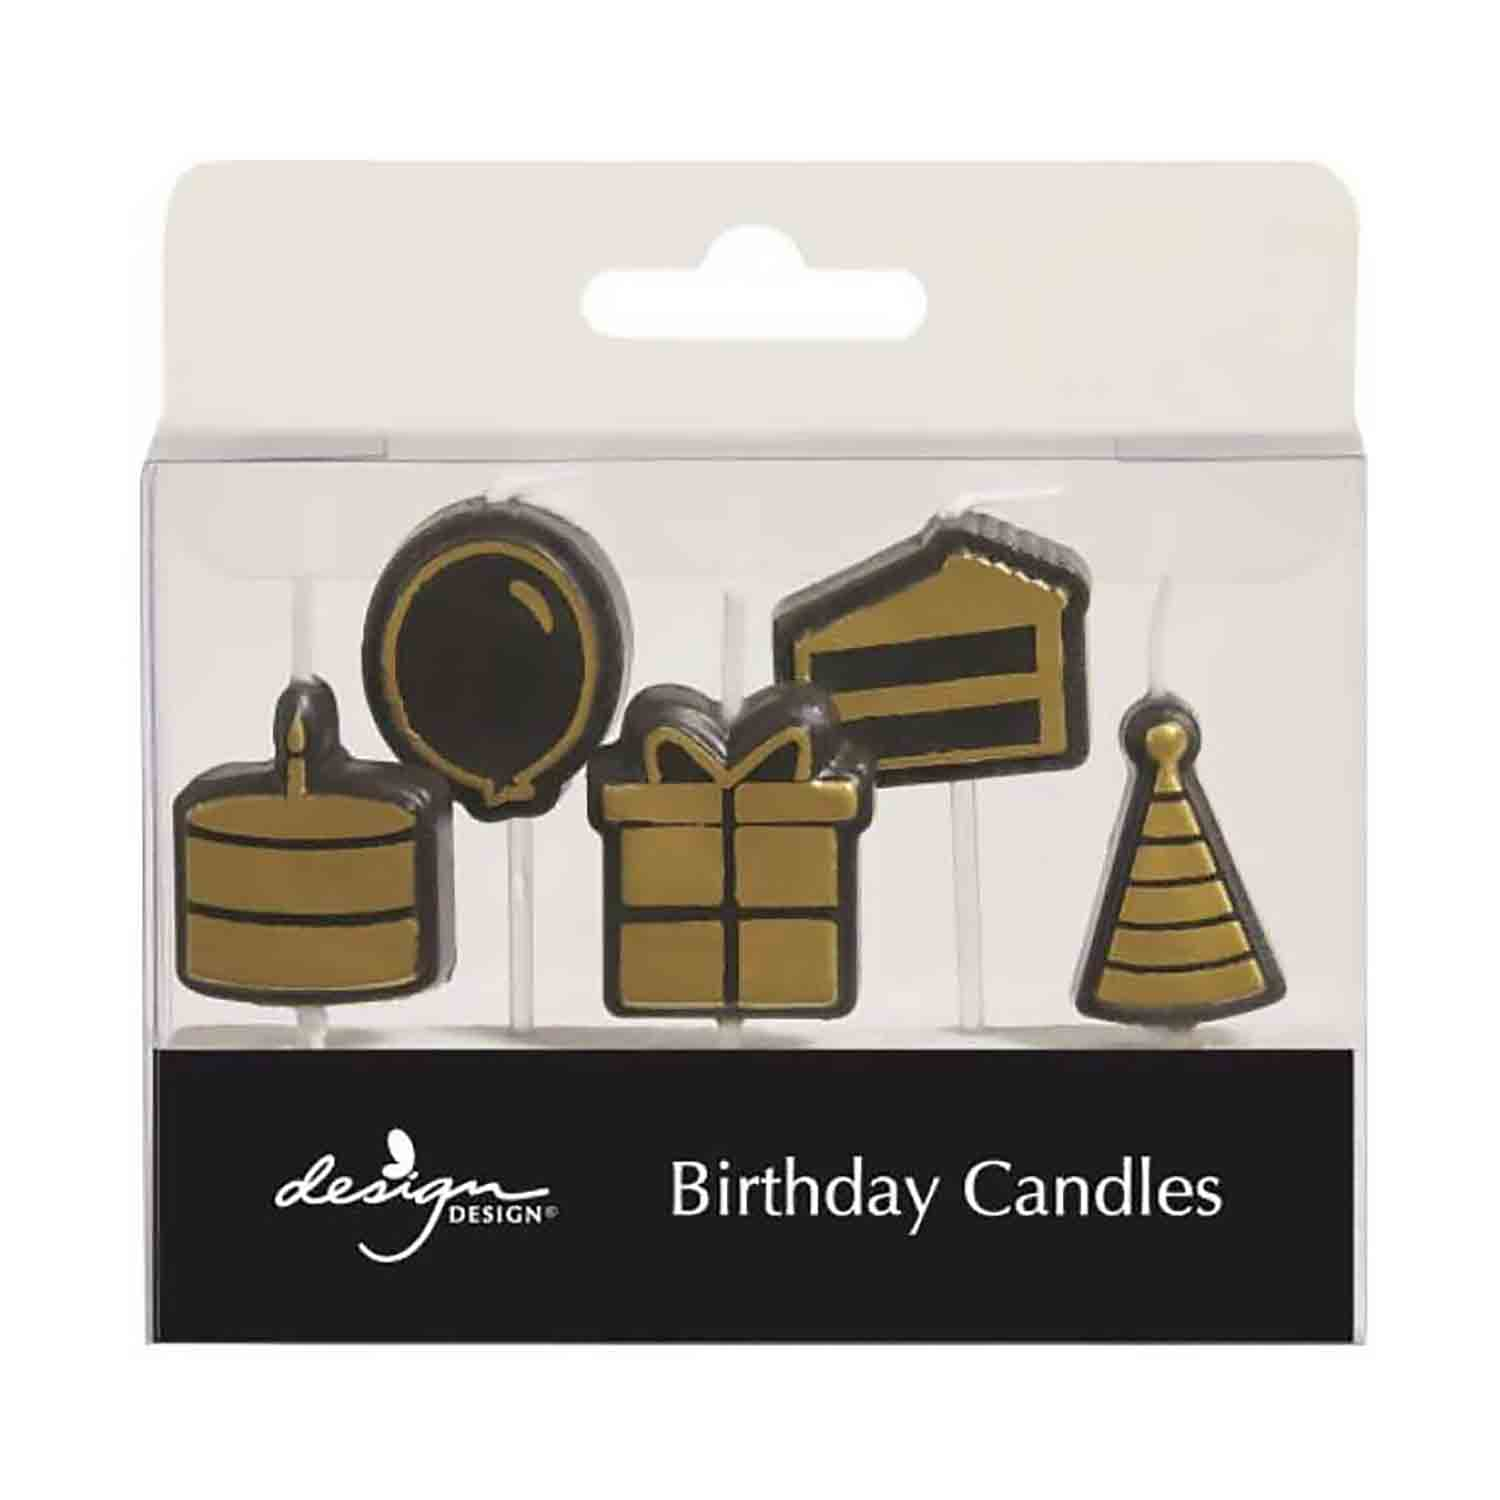 Timeless Celebration Candle Set